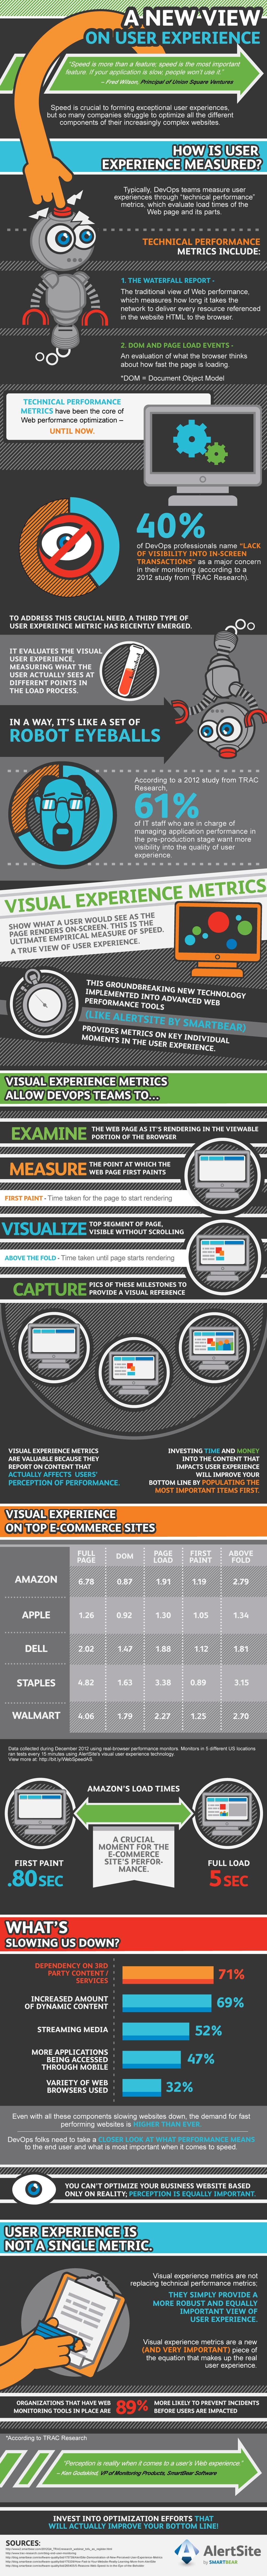 How UX Metrics are Changing the Way We Measure Web Speed [INFOGRAPHIC]